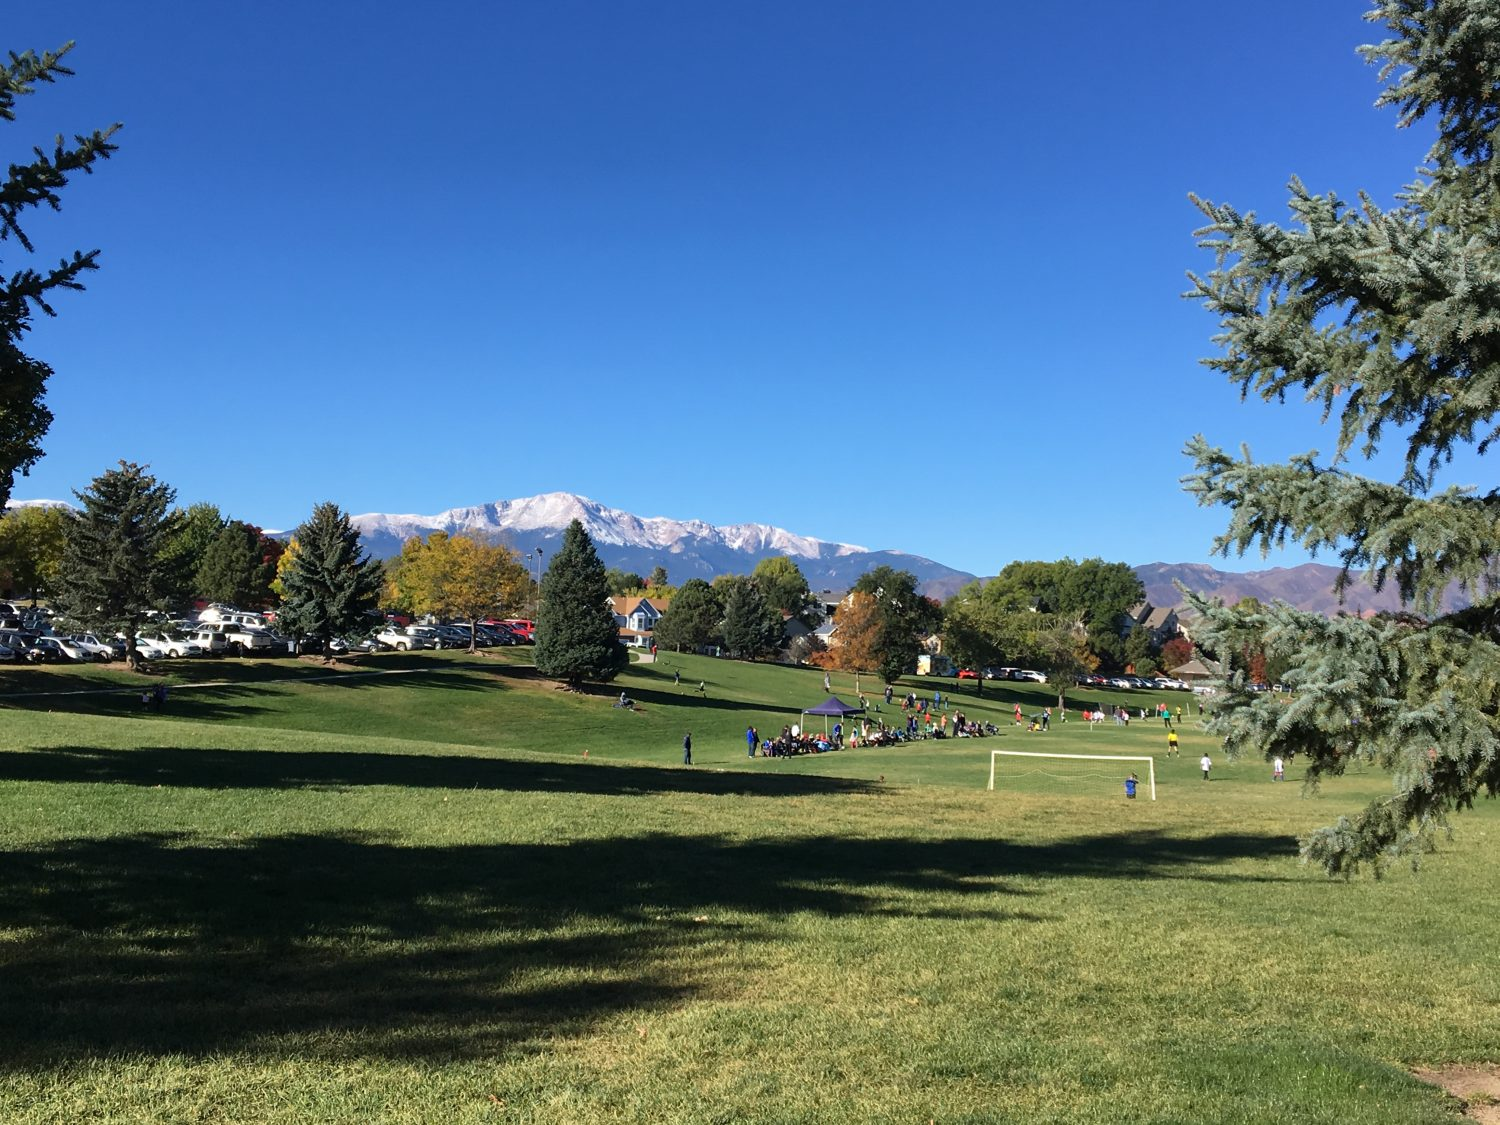 picture of Pikes Peak from Cottonwood Creek Park in Colorado Springs